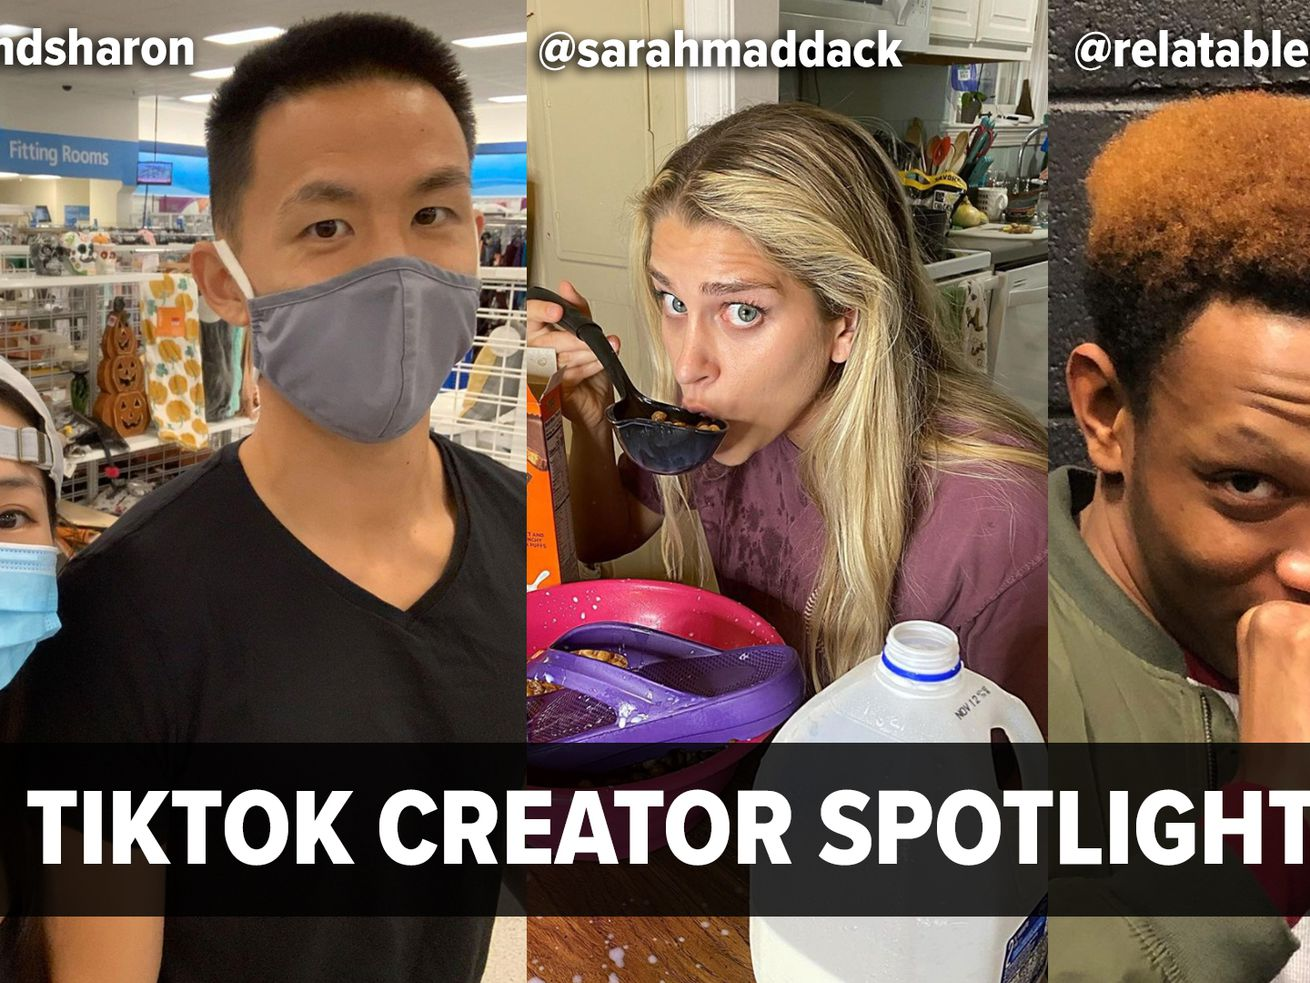 TikTok Creators That Are Funny As F*ck & Make Comedy More Inclusive